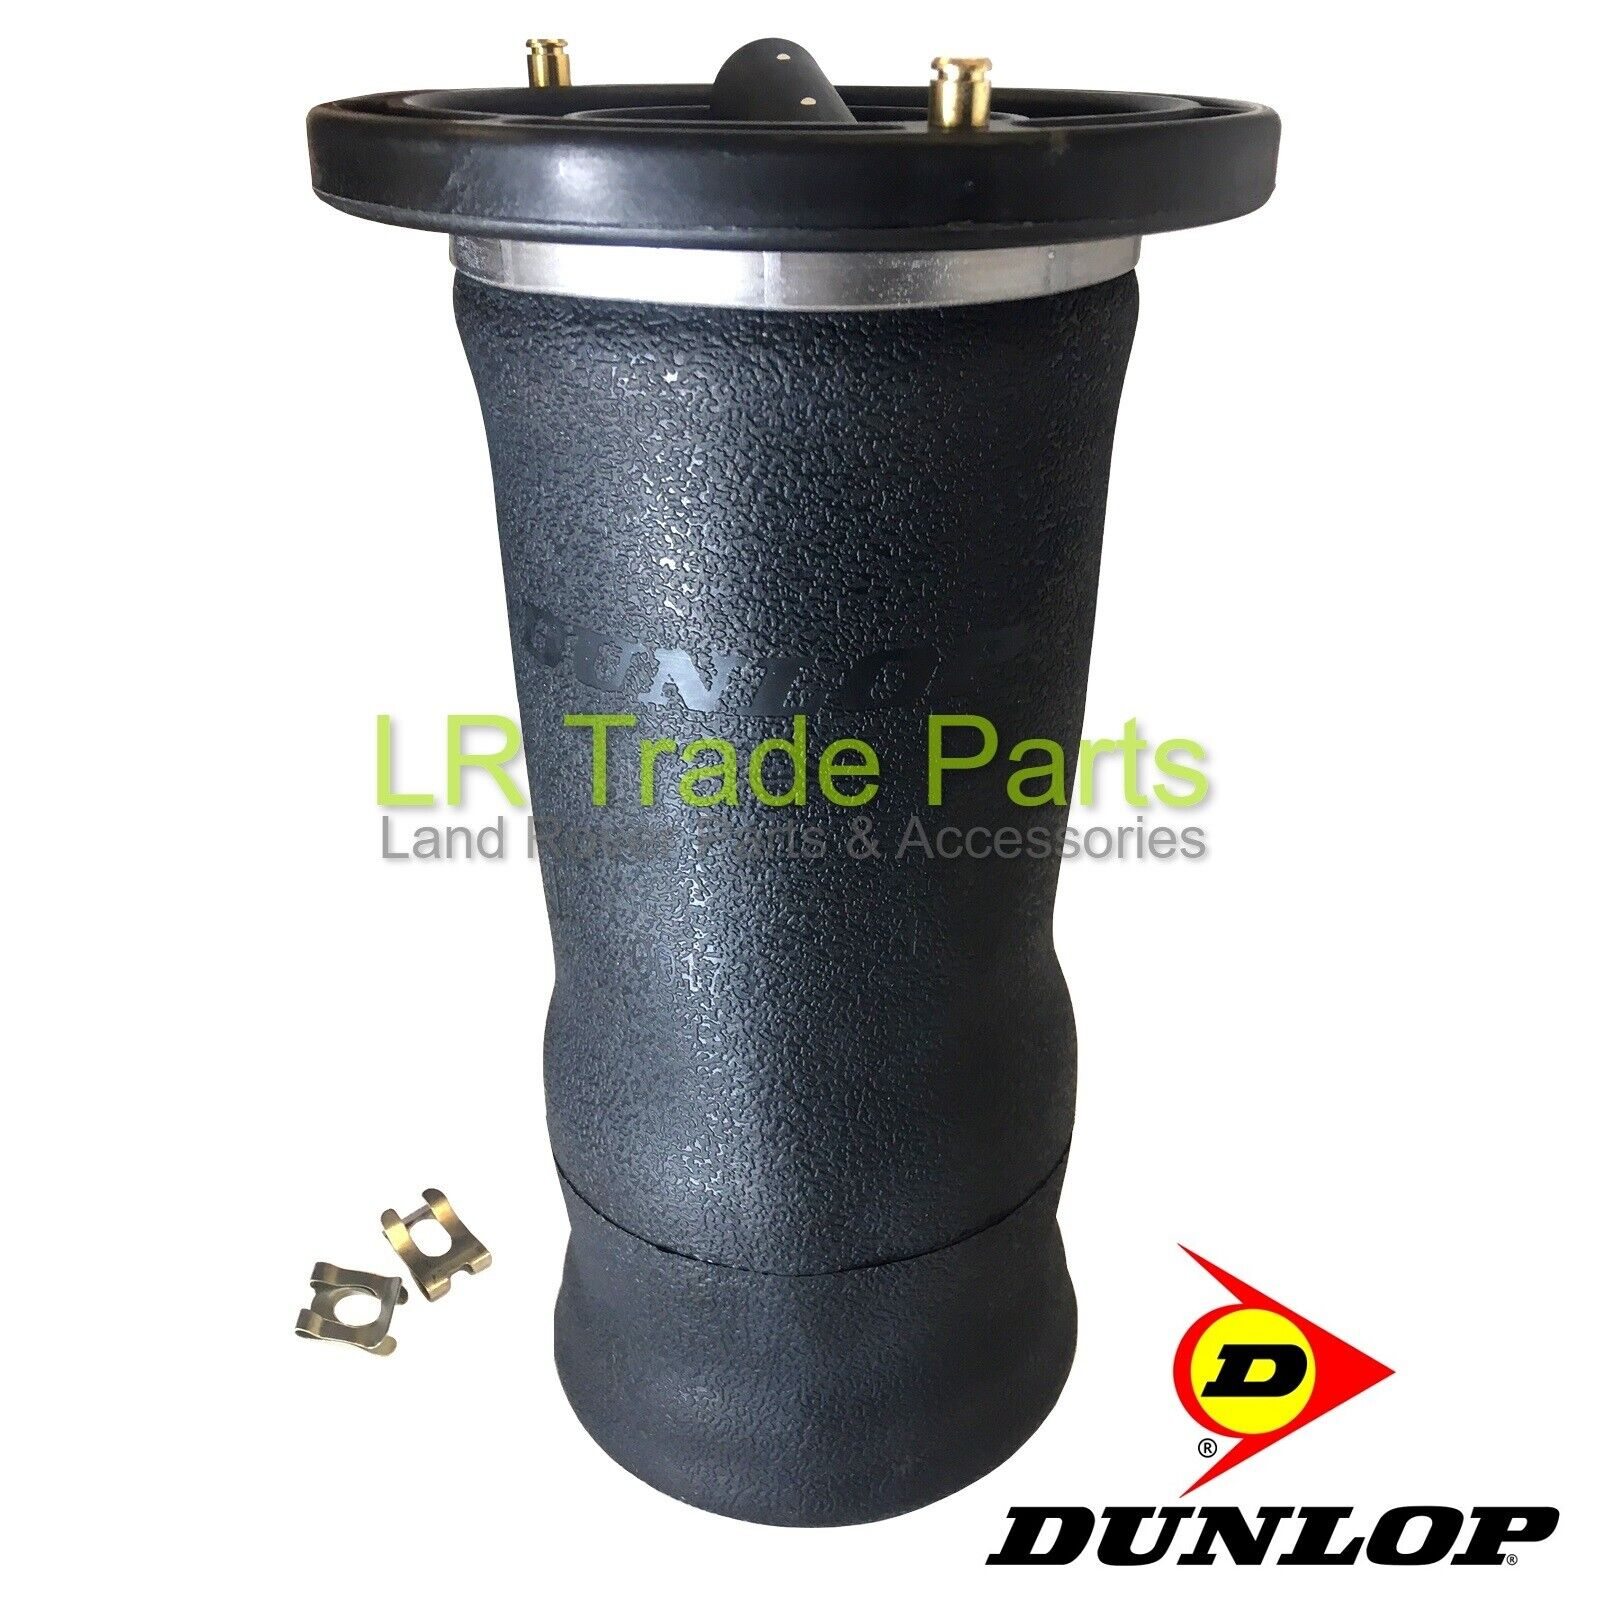 1 Pair For LAND ROVER DISCOVERY 2 New Rear Air Suspension Spring Bag RKB101200